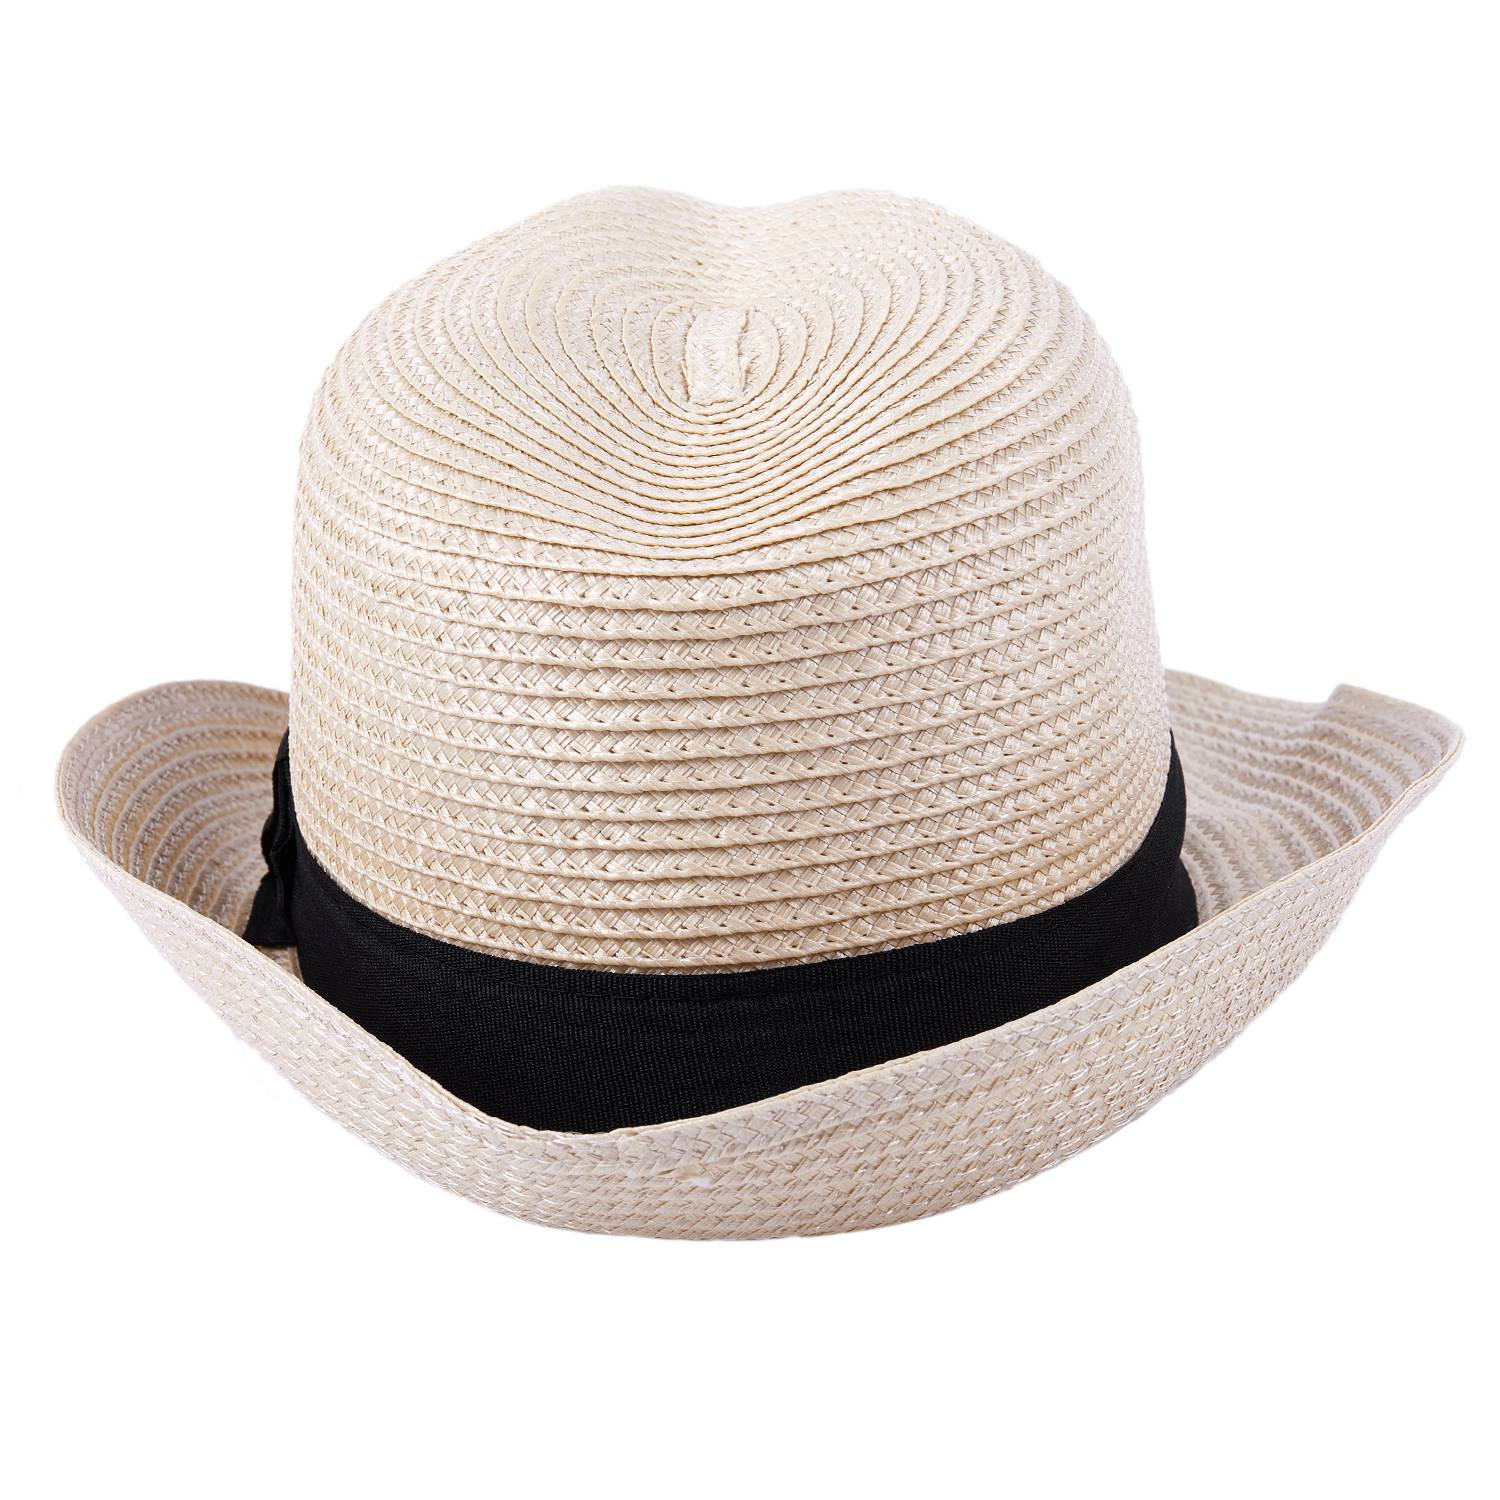 13a36042421 Details about Straw Hat - Trilby Style Crushable Summer Sun Mens Ladies -  Beige G6J3